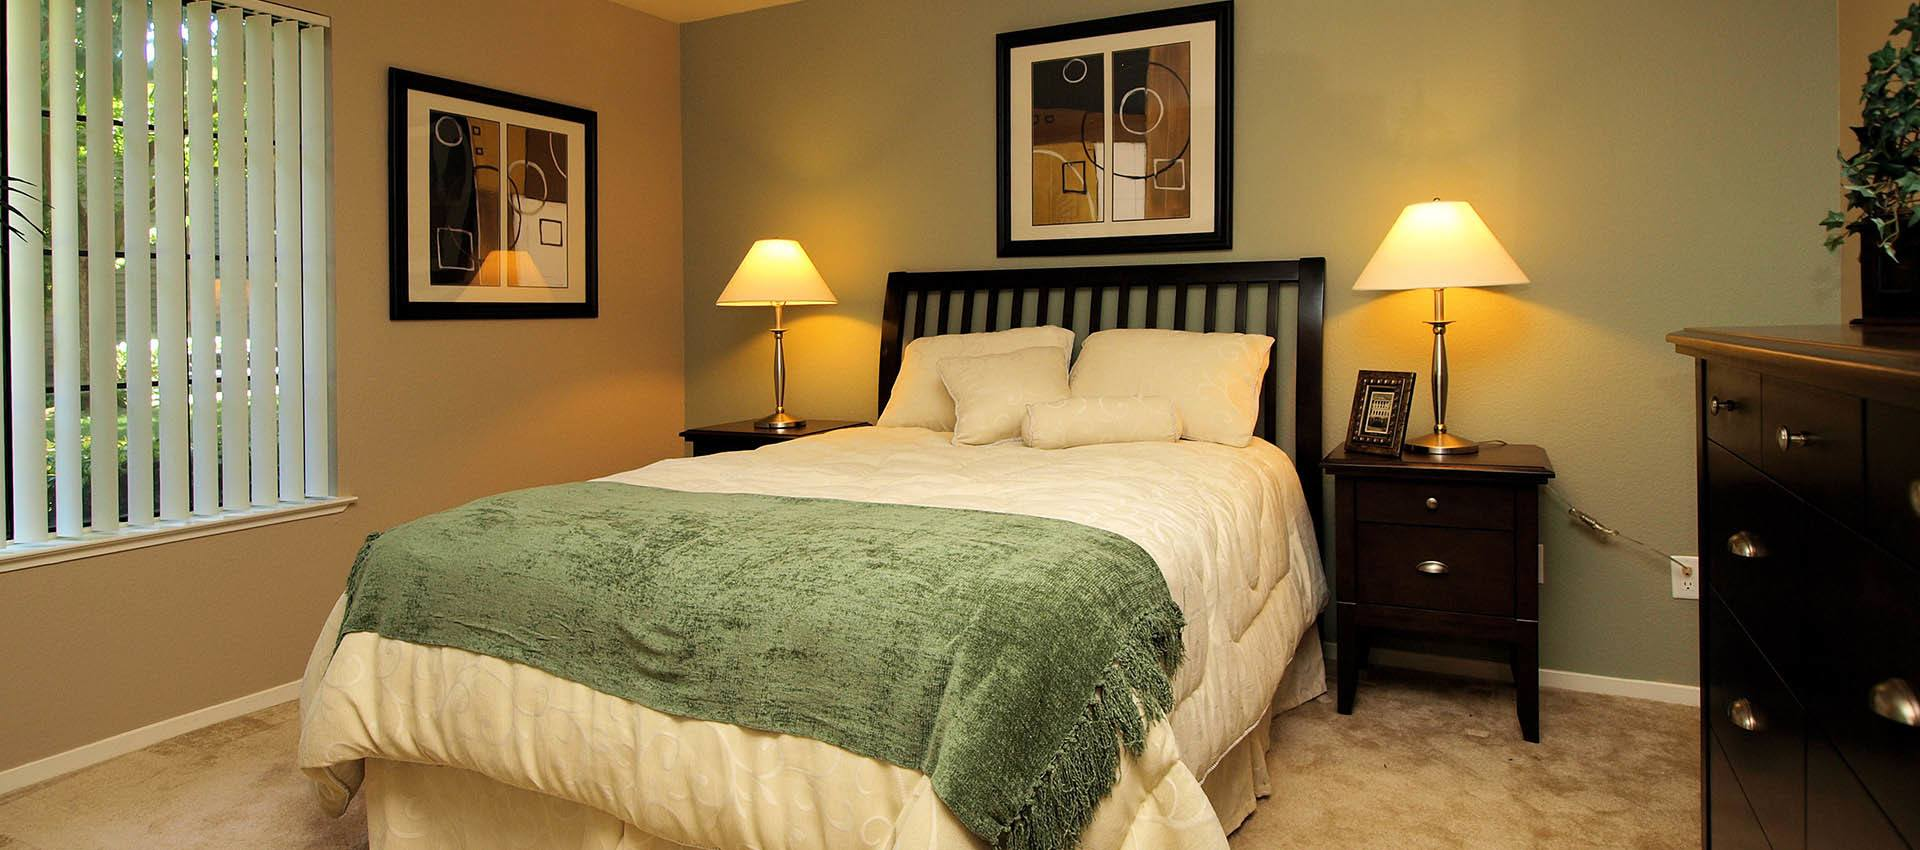 Master Bedroom at Hidden Lake Condominium Rentals in Sacramento, CA